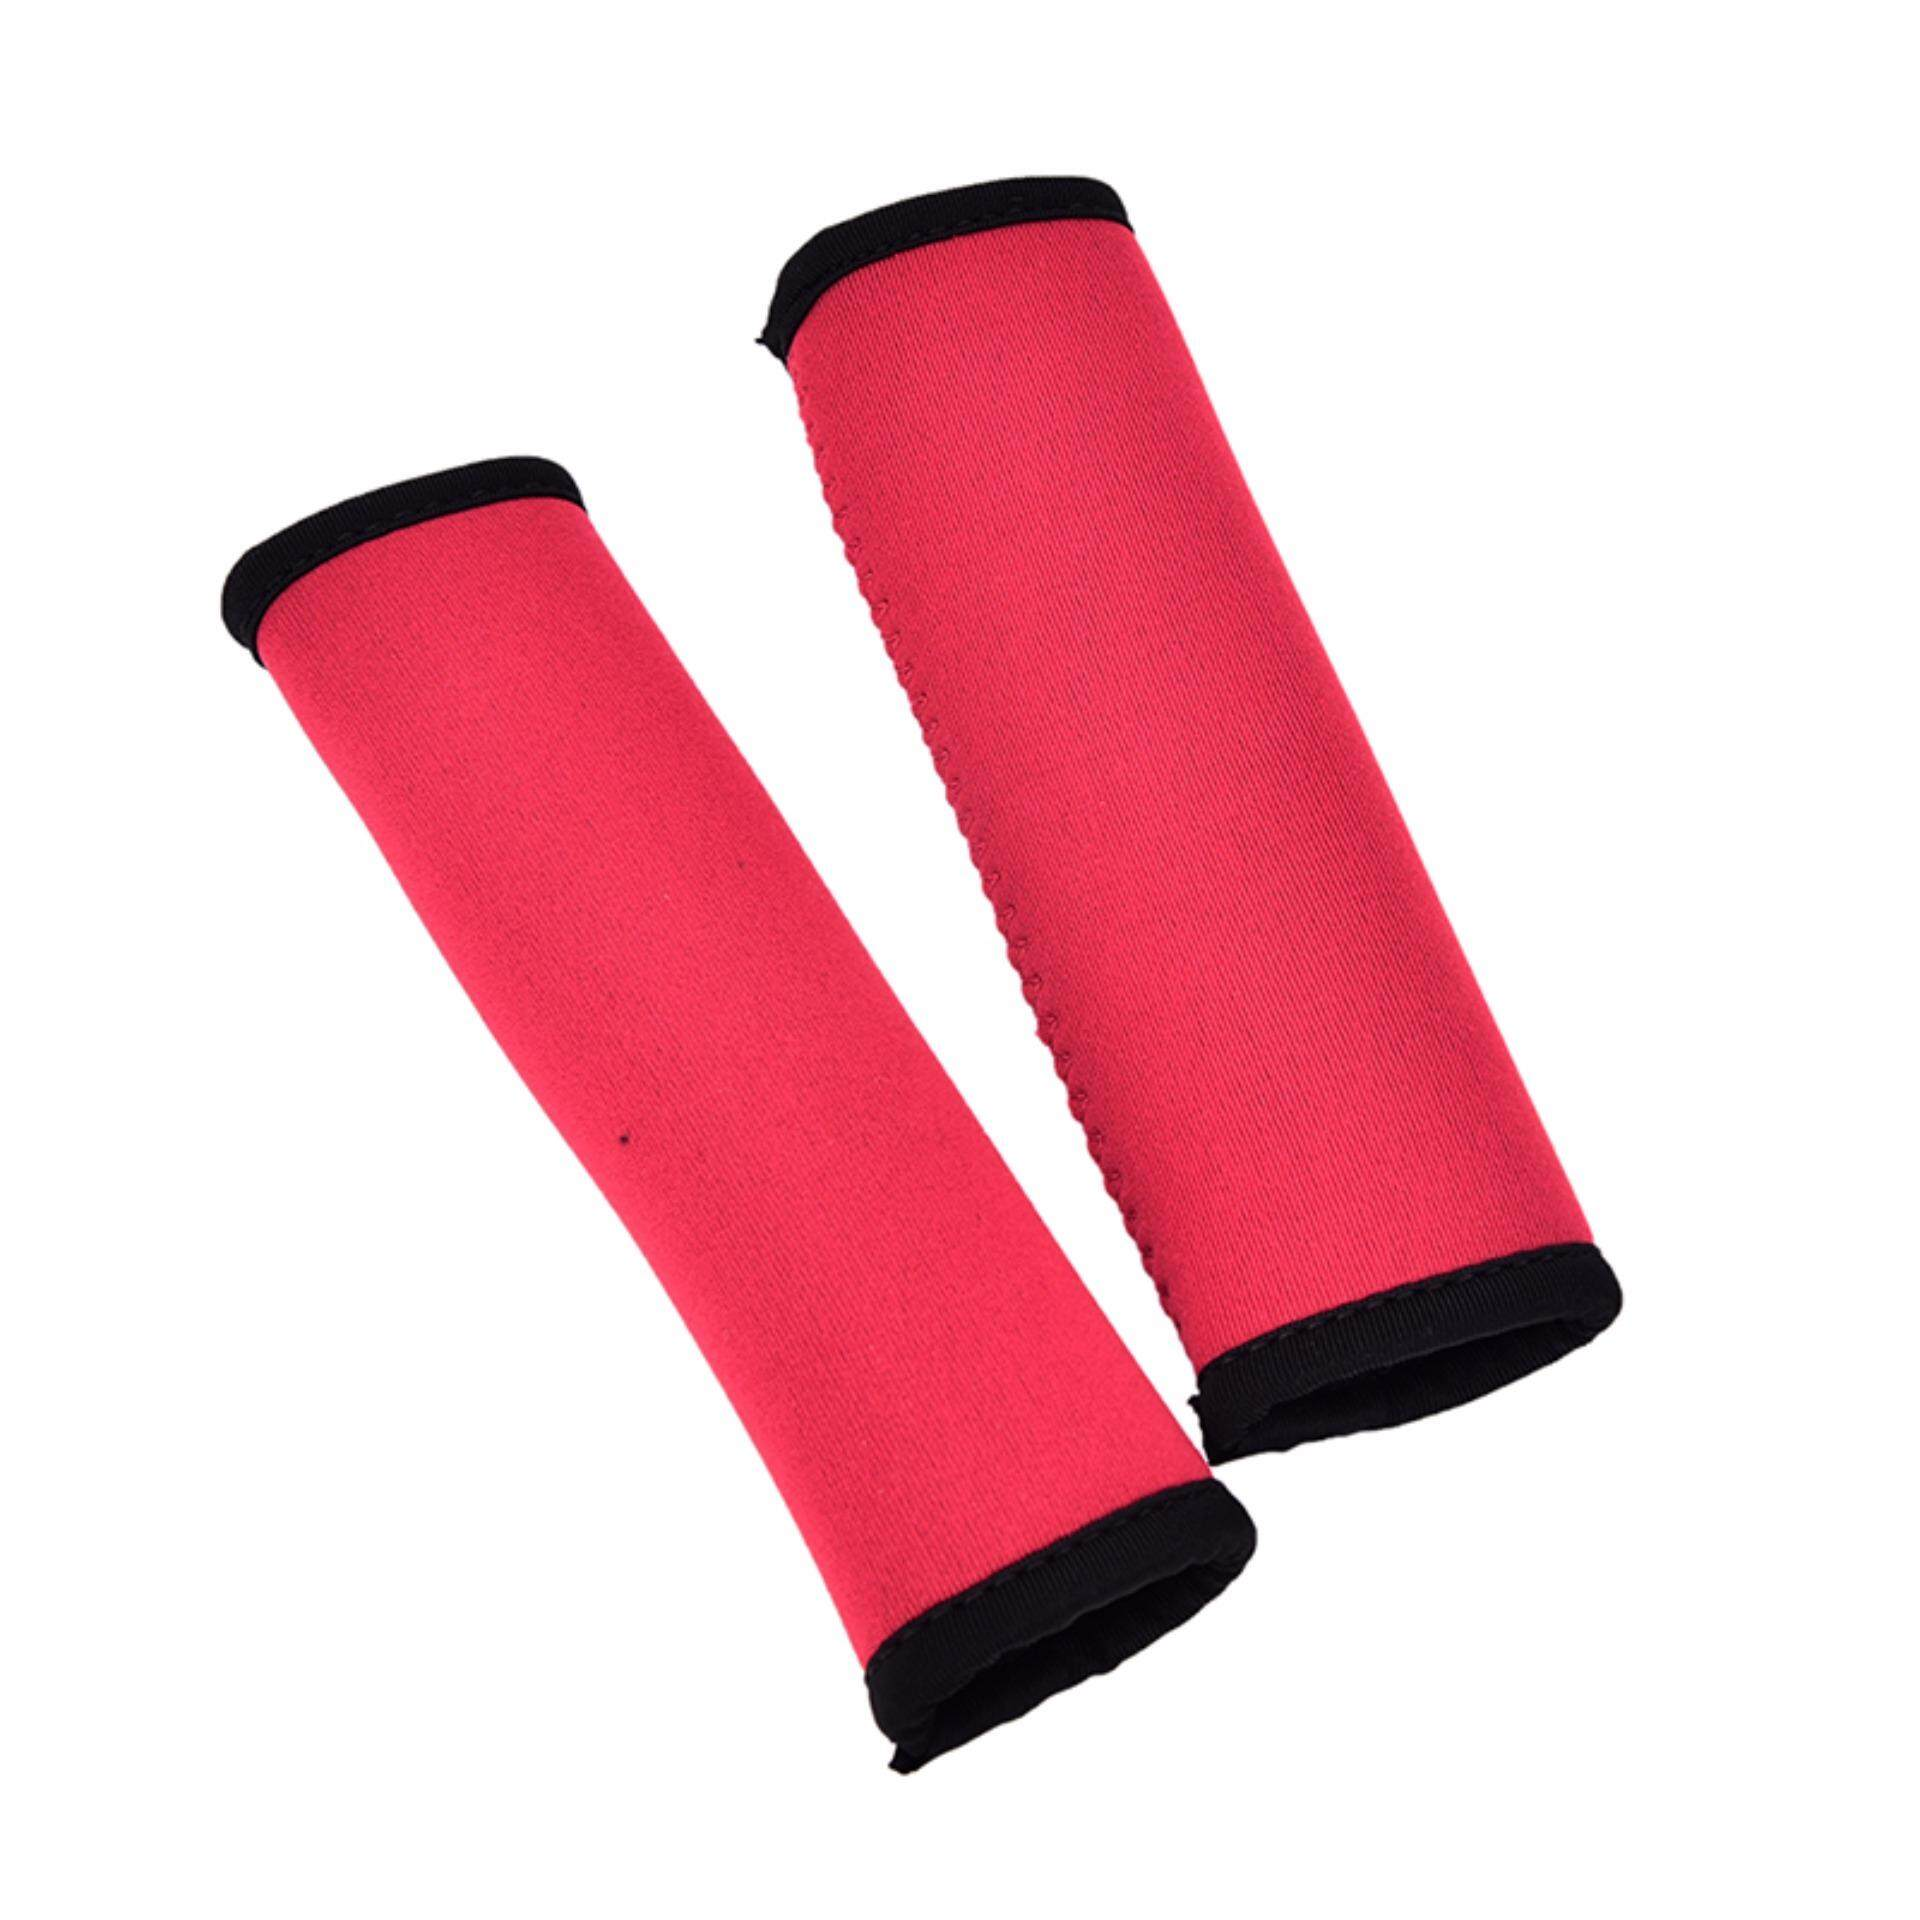 Hình ảnh 2Pcs Durable Kayak Canoe Boat Paddle Grips Prevent Blisters Calluses Fray Red - intl